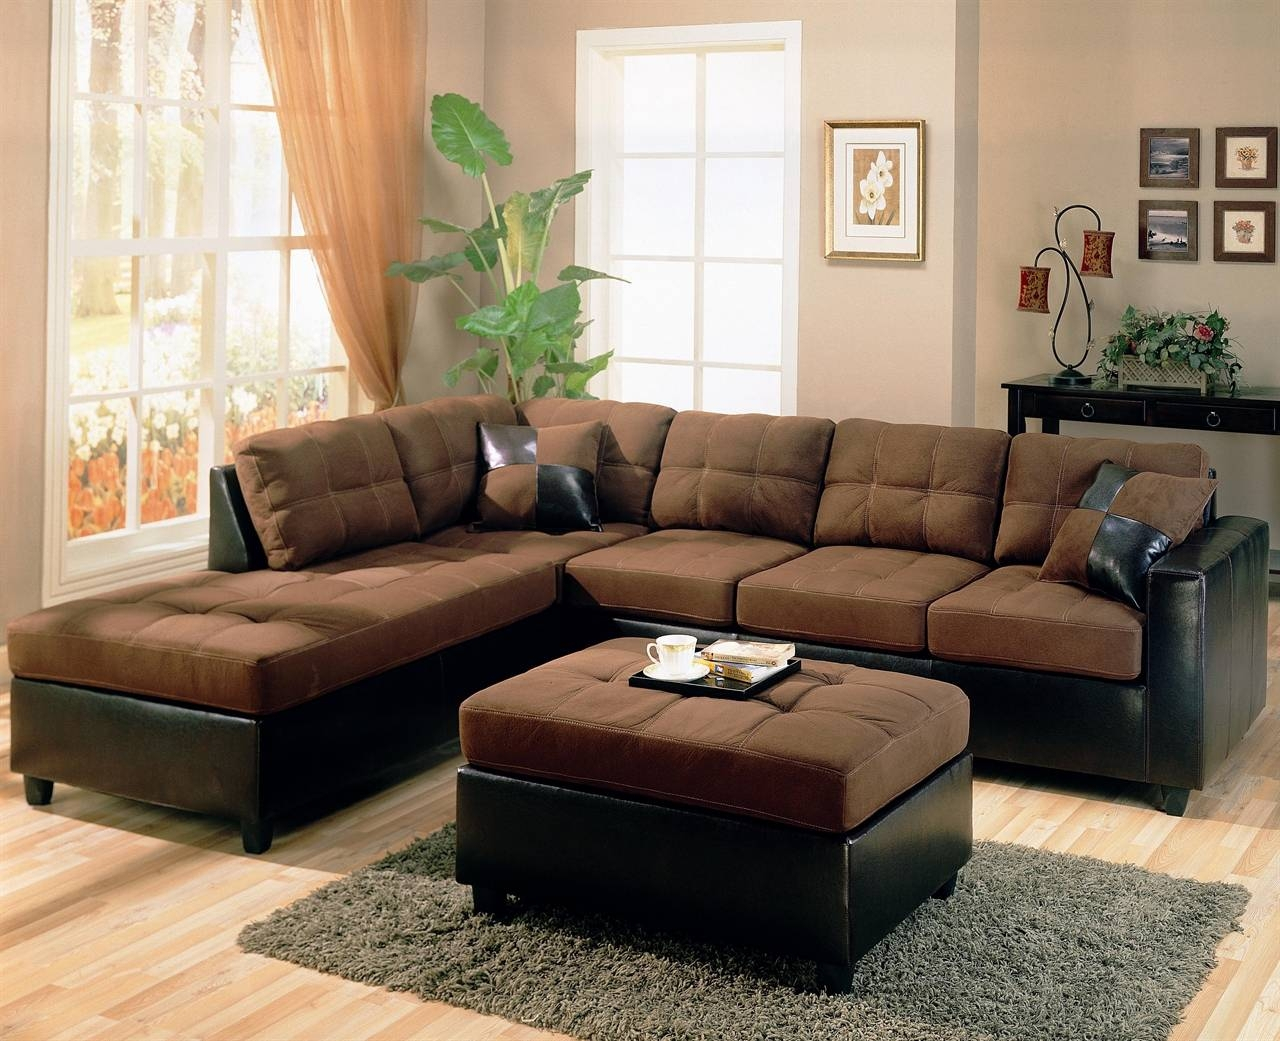 Furniture Stores Kent | Cheap Furniture Tacoma | Lynnwood in Two Tone Sofas (Image 13 of 30)